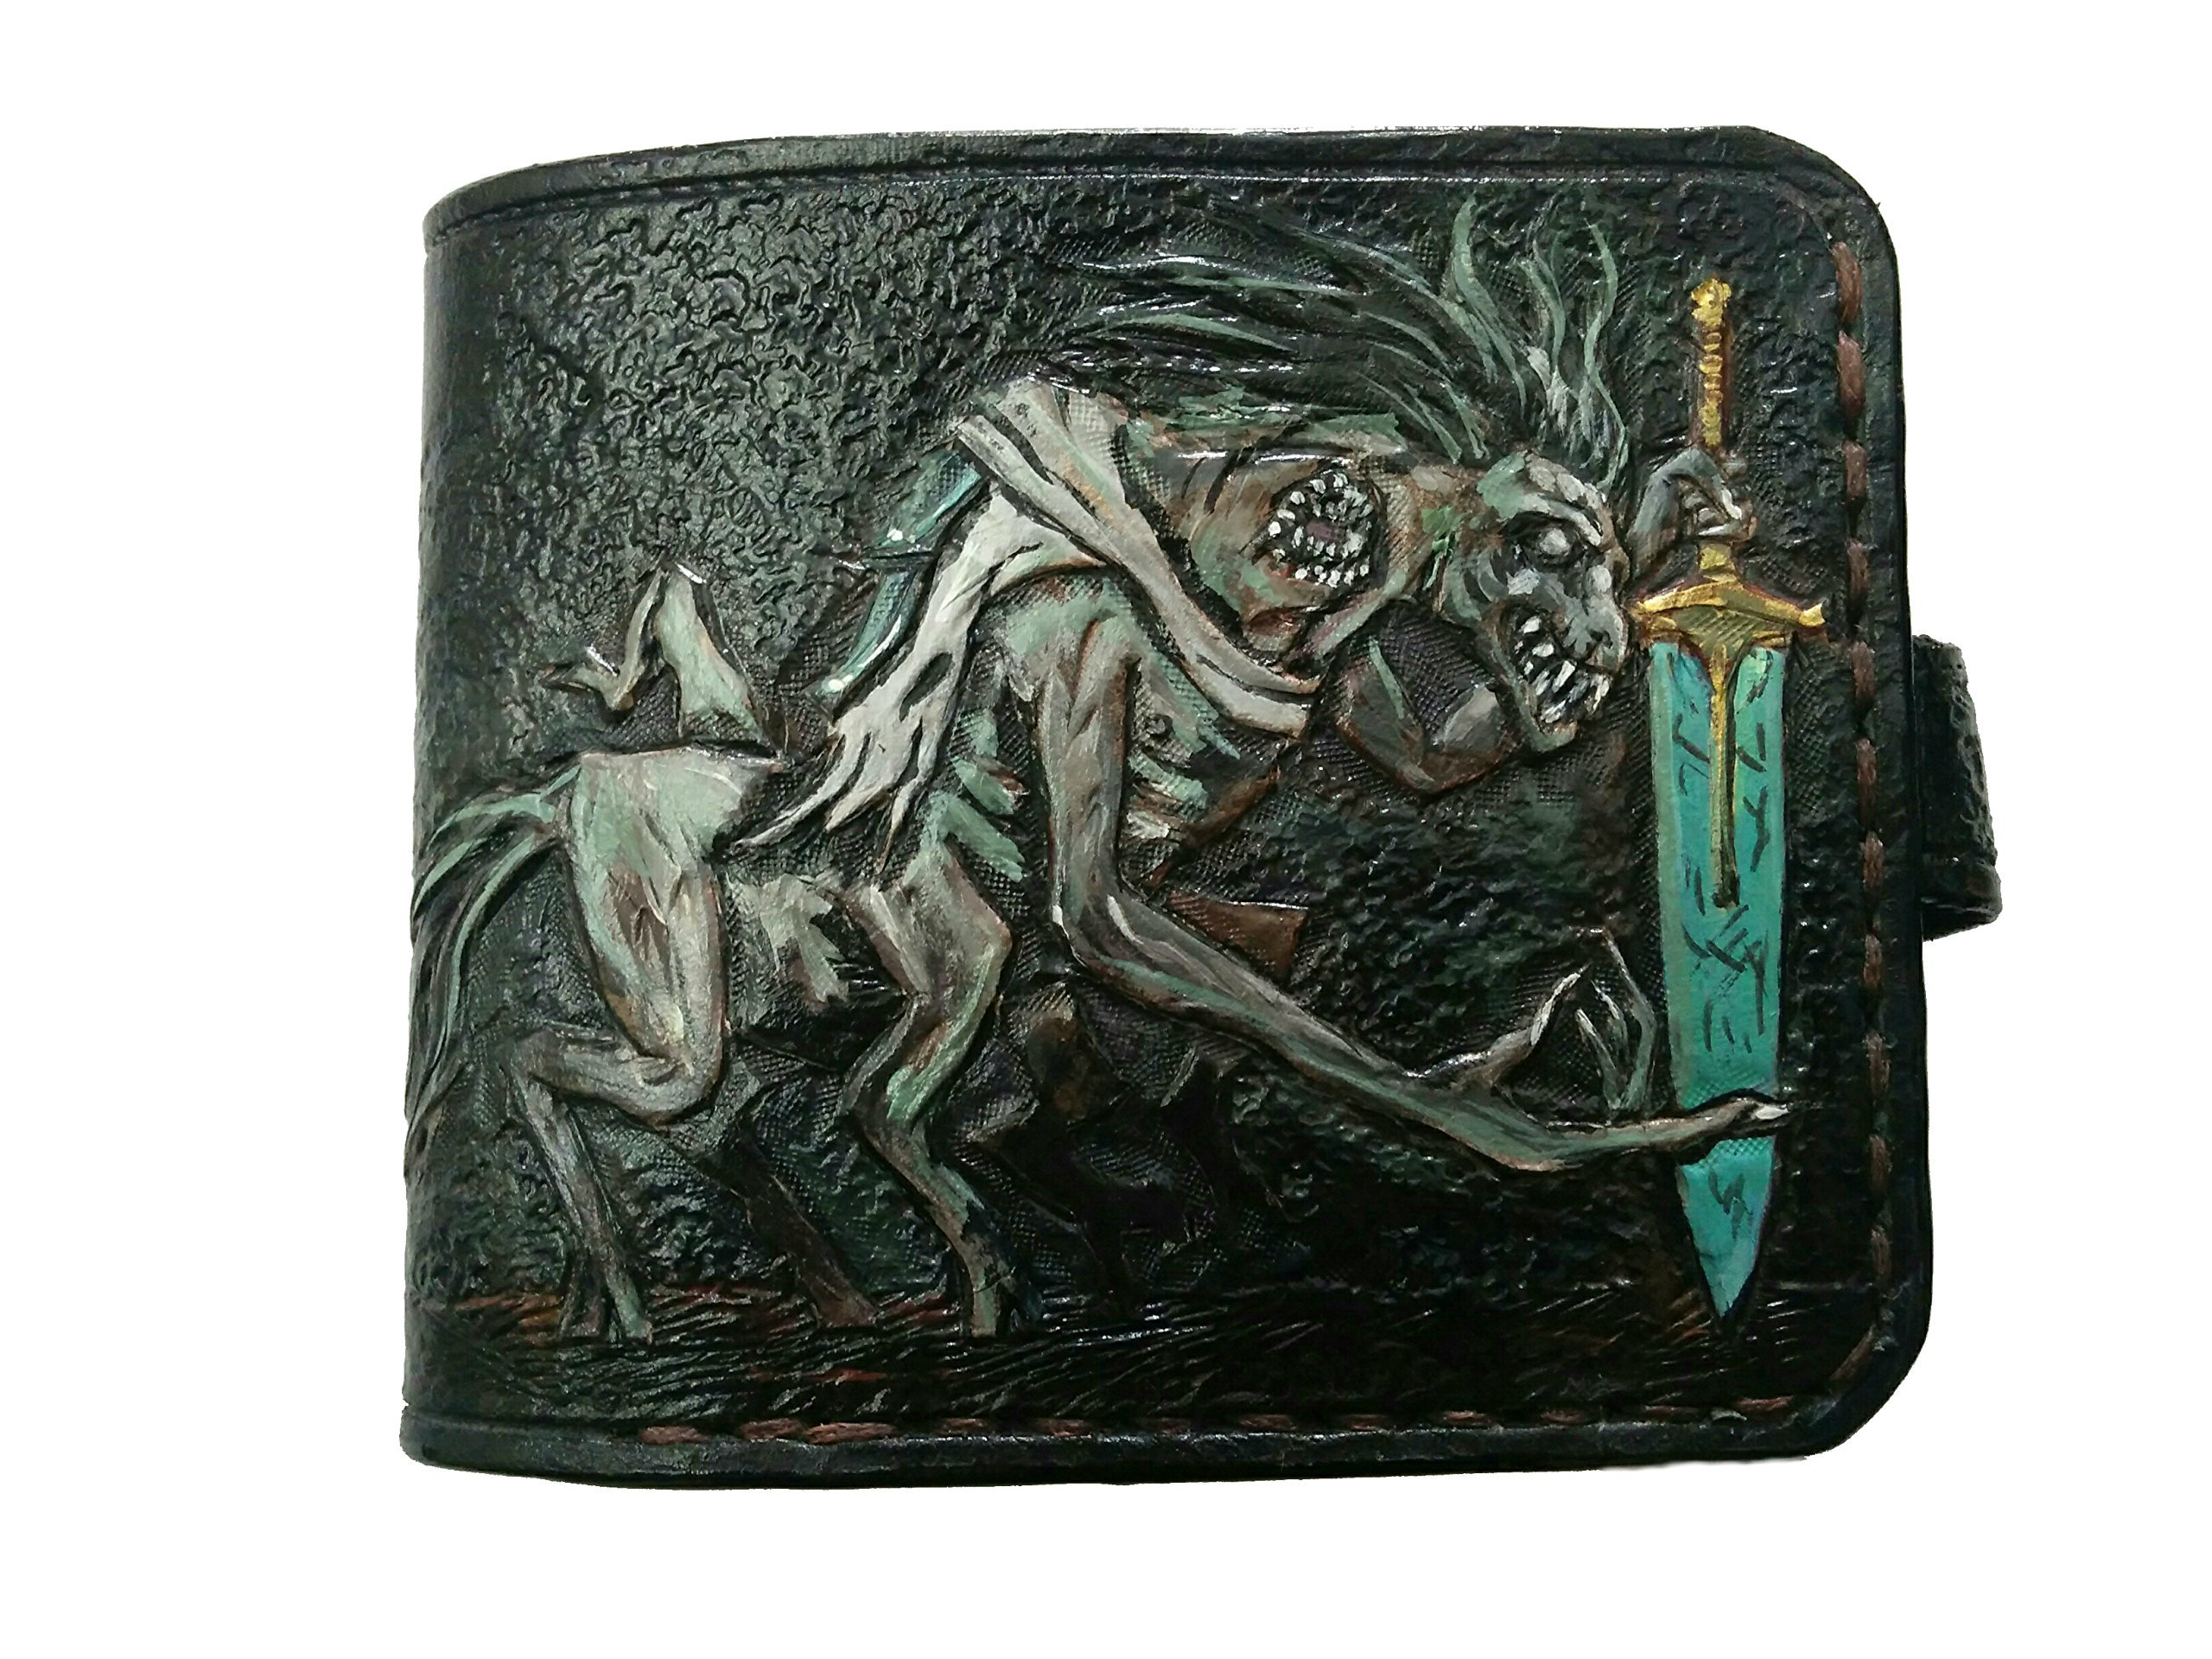 Men's 3D Genuine Leather Wallet, Hand-Carved, Hand-Painted, Leather Carving, Custom wallet, Personalized wallet, Bloodborne, The Holy Blade, Ludwig, The Old Hunters